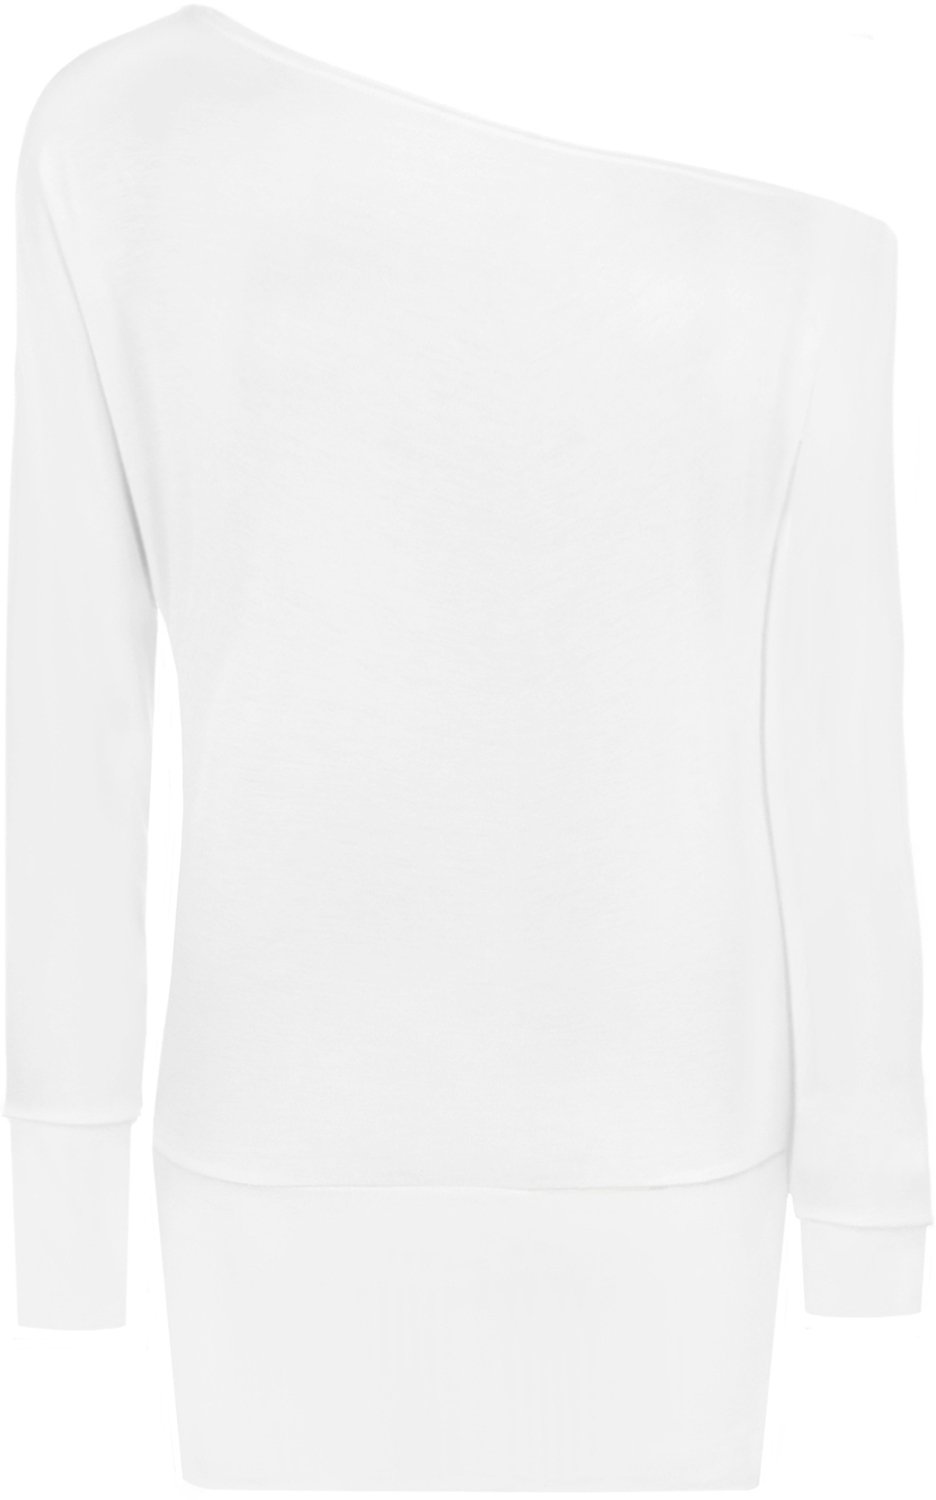 WearAll Women's Off-Shoulder Batwing Top - White - US 4-6 (UK 8-10)